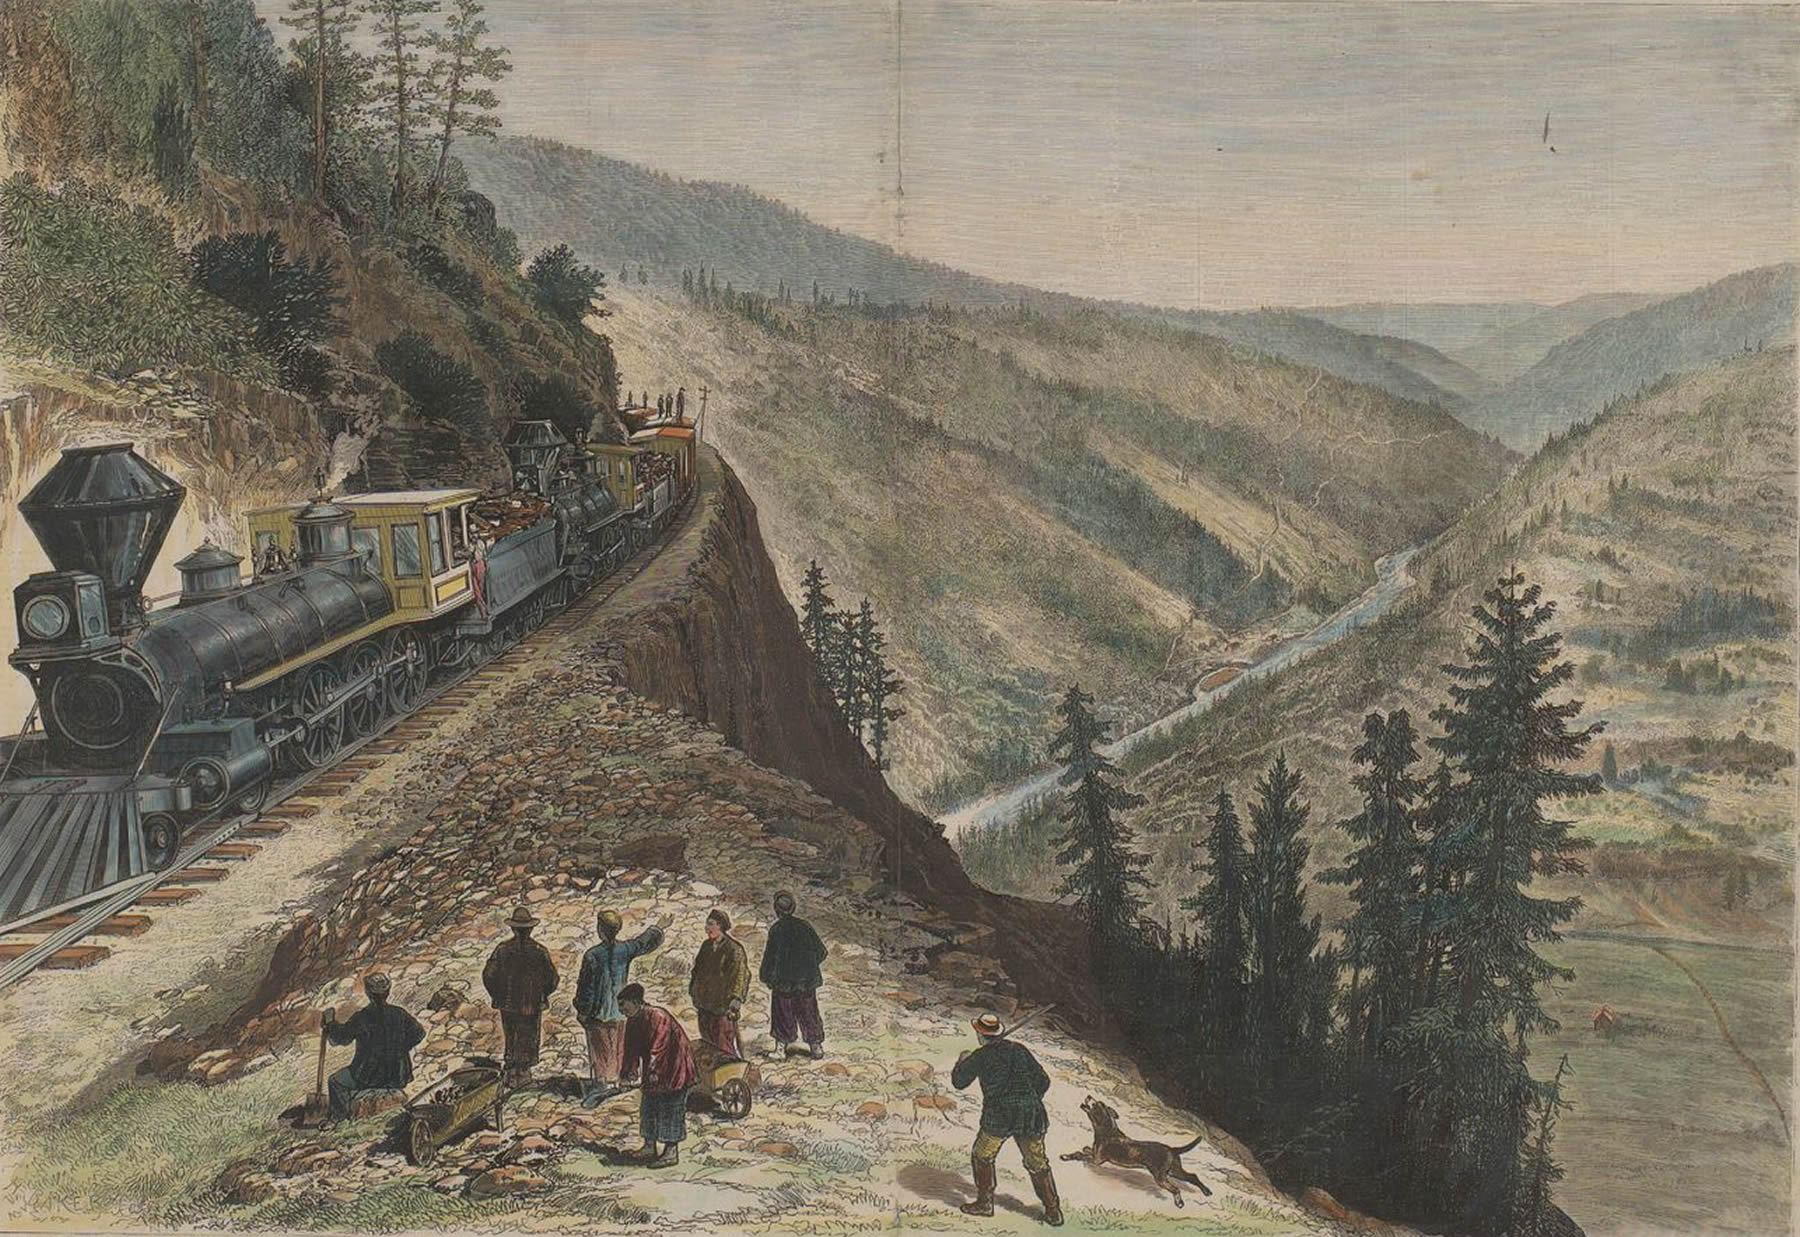 Across the continent: the Frank Leslie transcontinental excursion, Horace Baker (1833-1918), engraver and Frank Leslie, publisher, 1878, Courtesy online archive of California.